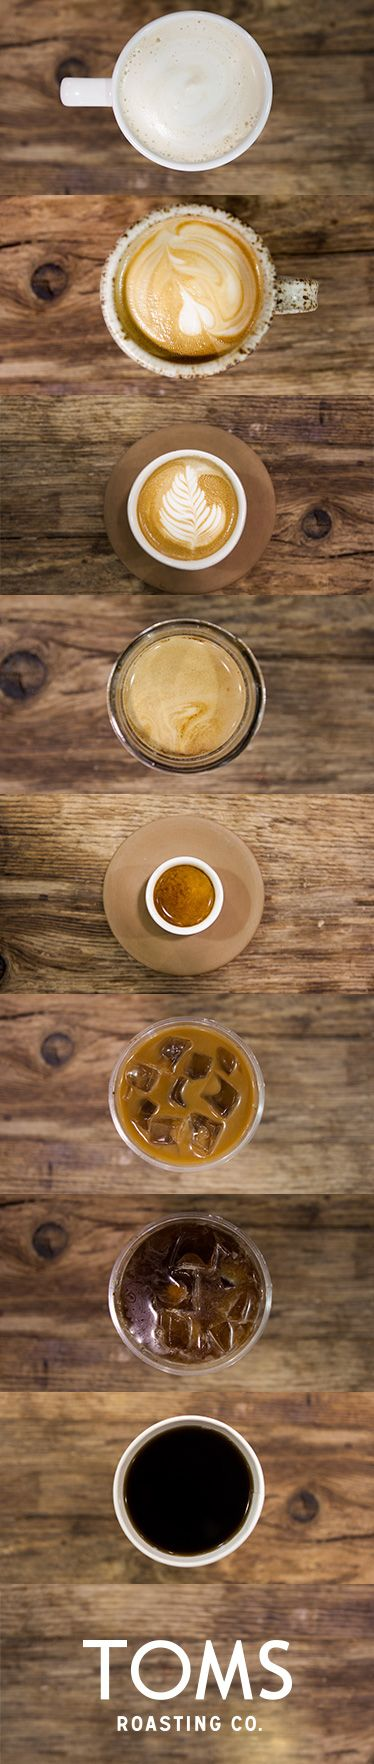 8 ways to make #TOMSRoastingCo your own #coffee